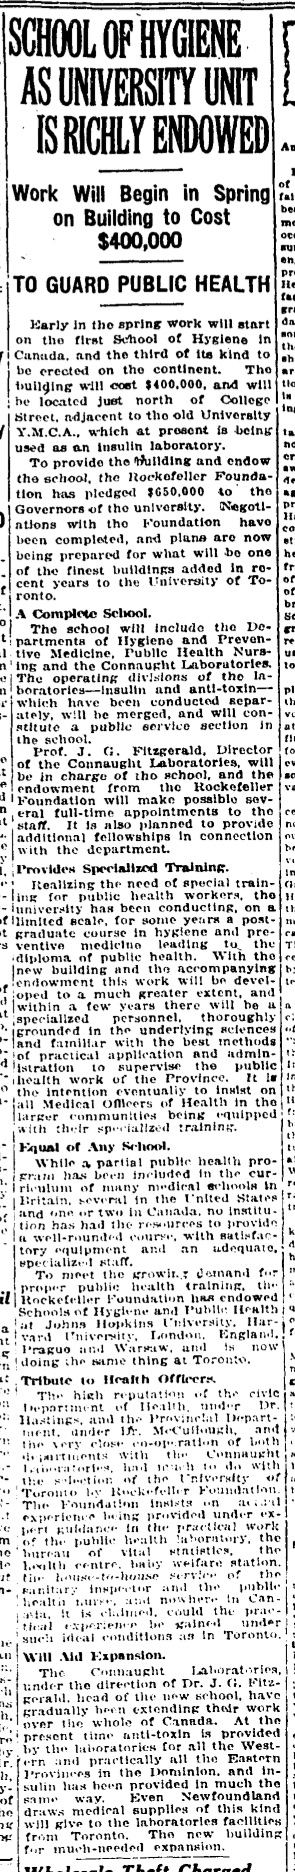 February 17, 1925, newspaper clipping announcing plans for the School of Hygiene at the University of Toronto and its endowment by the International Health Board of the Rockefeller Foundation.